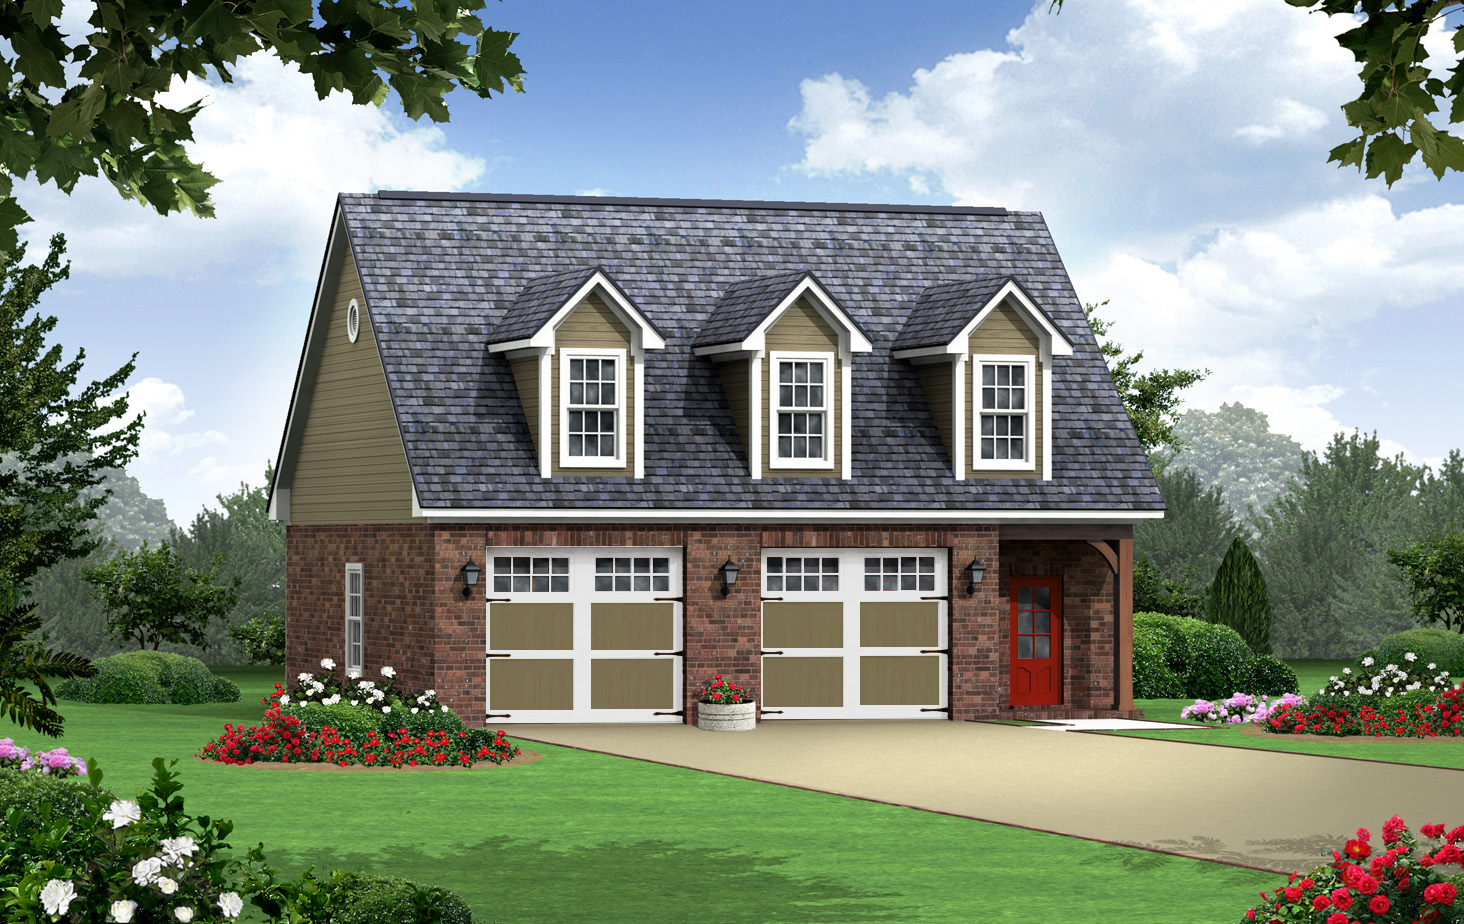 2 Car Garage with Apartment above Plans